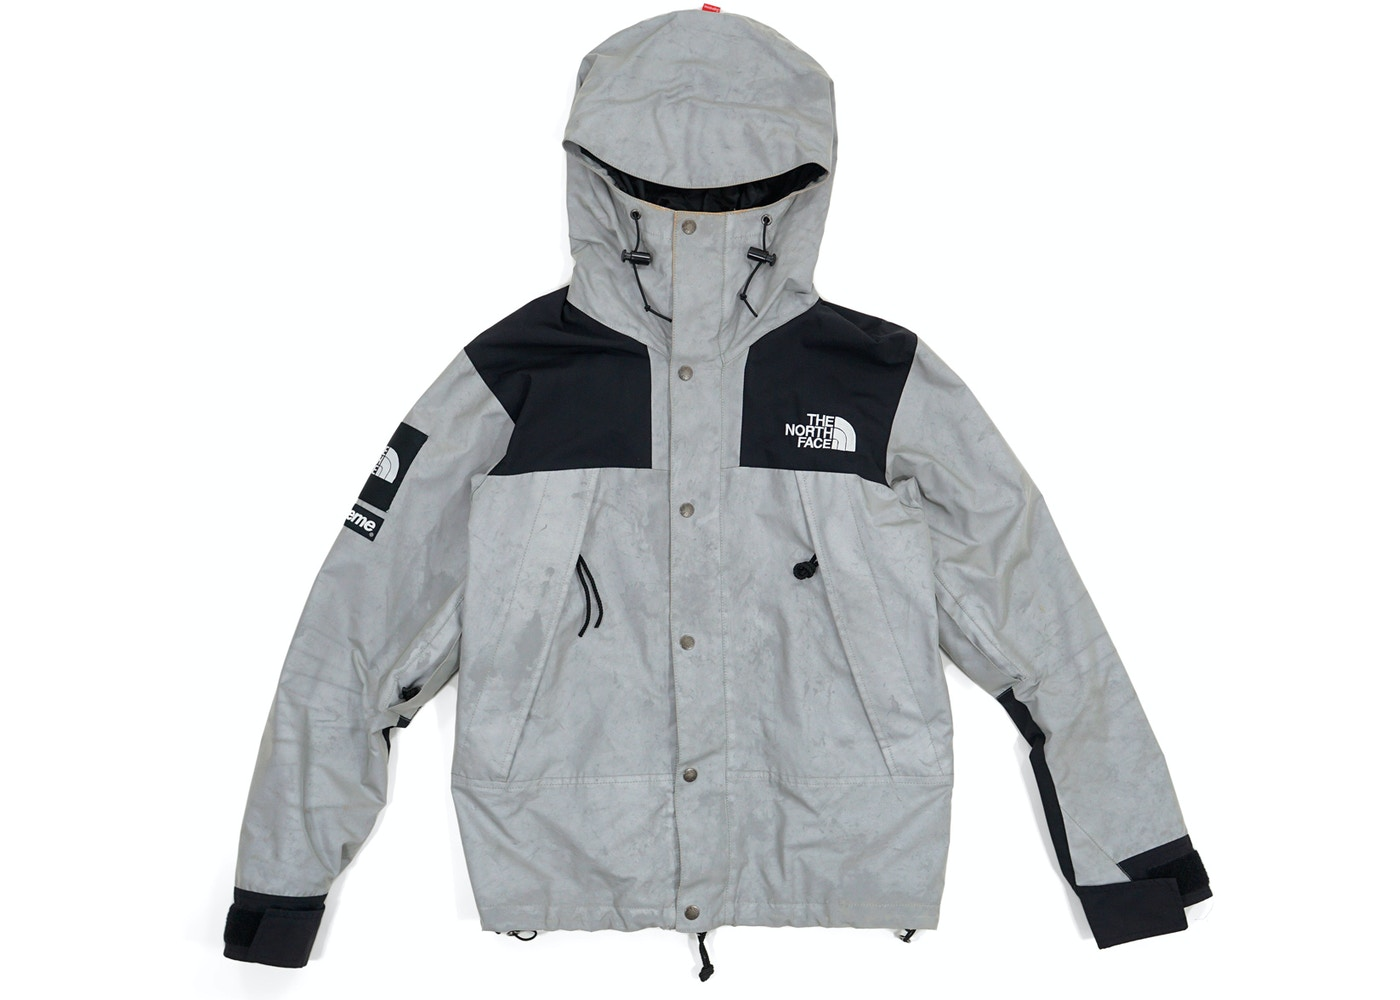 943c32c9 Supreme The North Face 3M Reflective Mountain Jacket Black - SS13